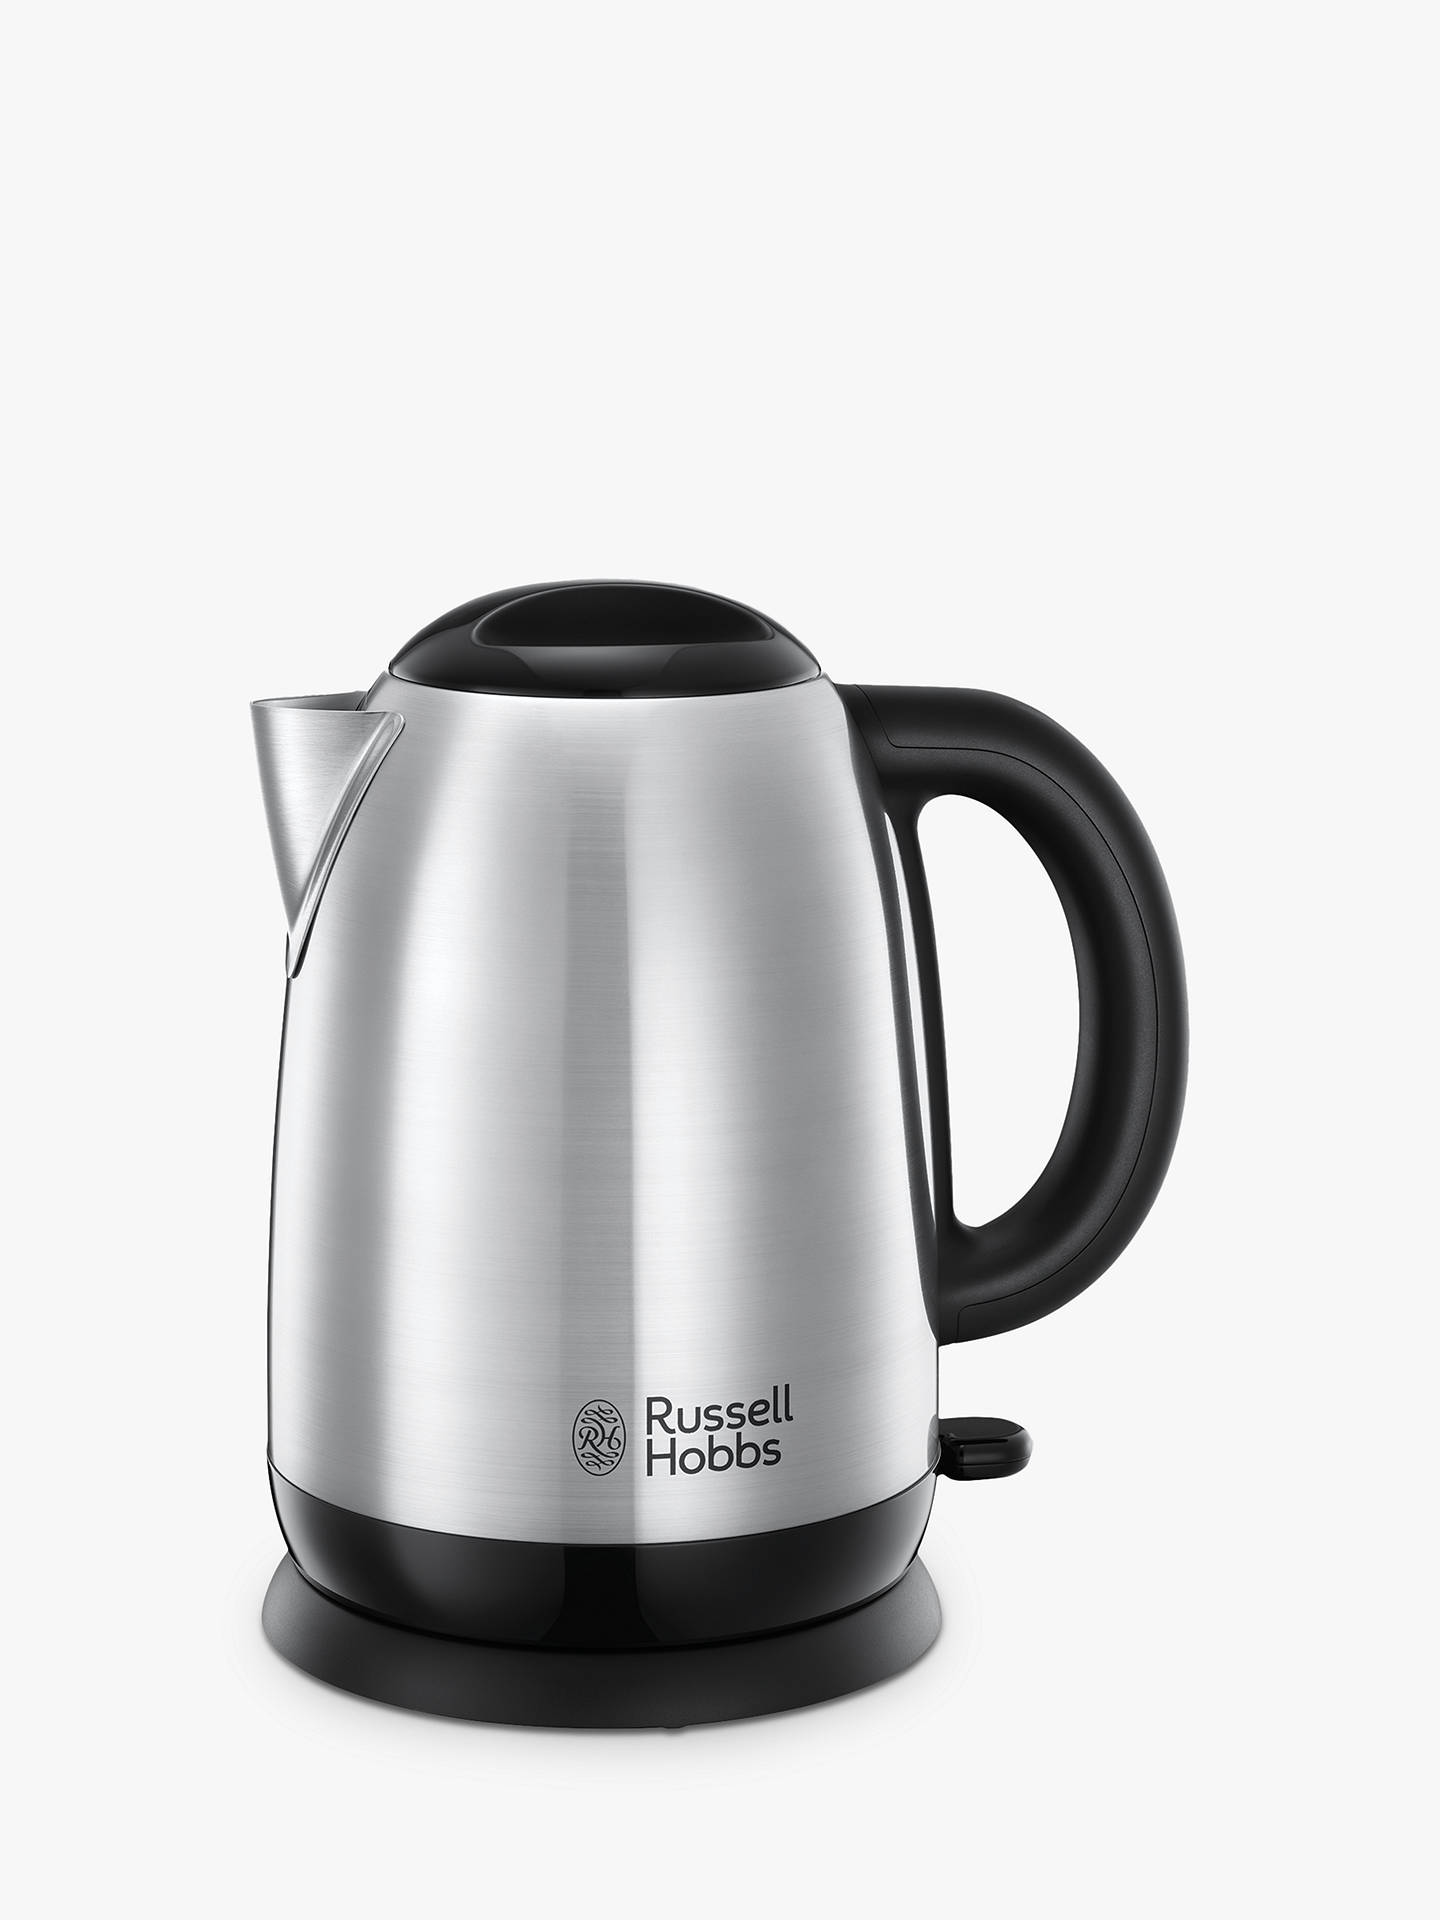 BuyRussell Hobbs 21392 Kettle, Stainless Steel Online at johnlewis.com